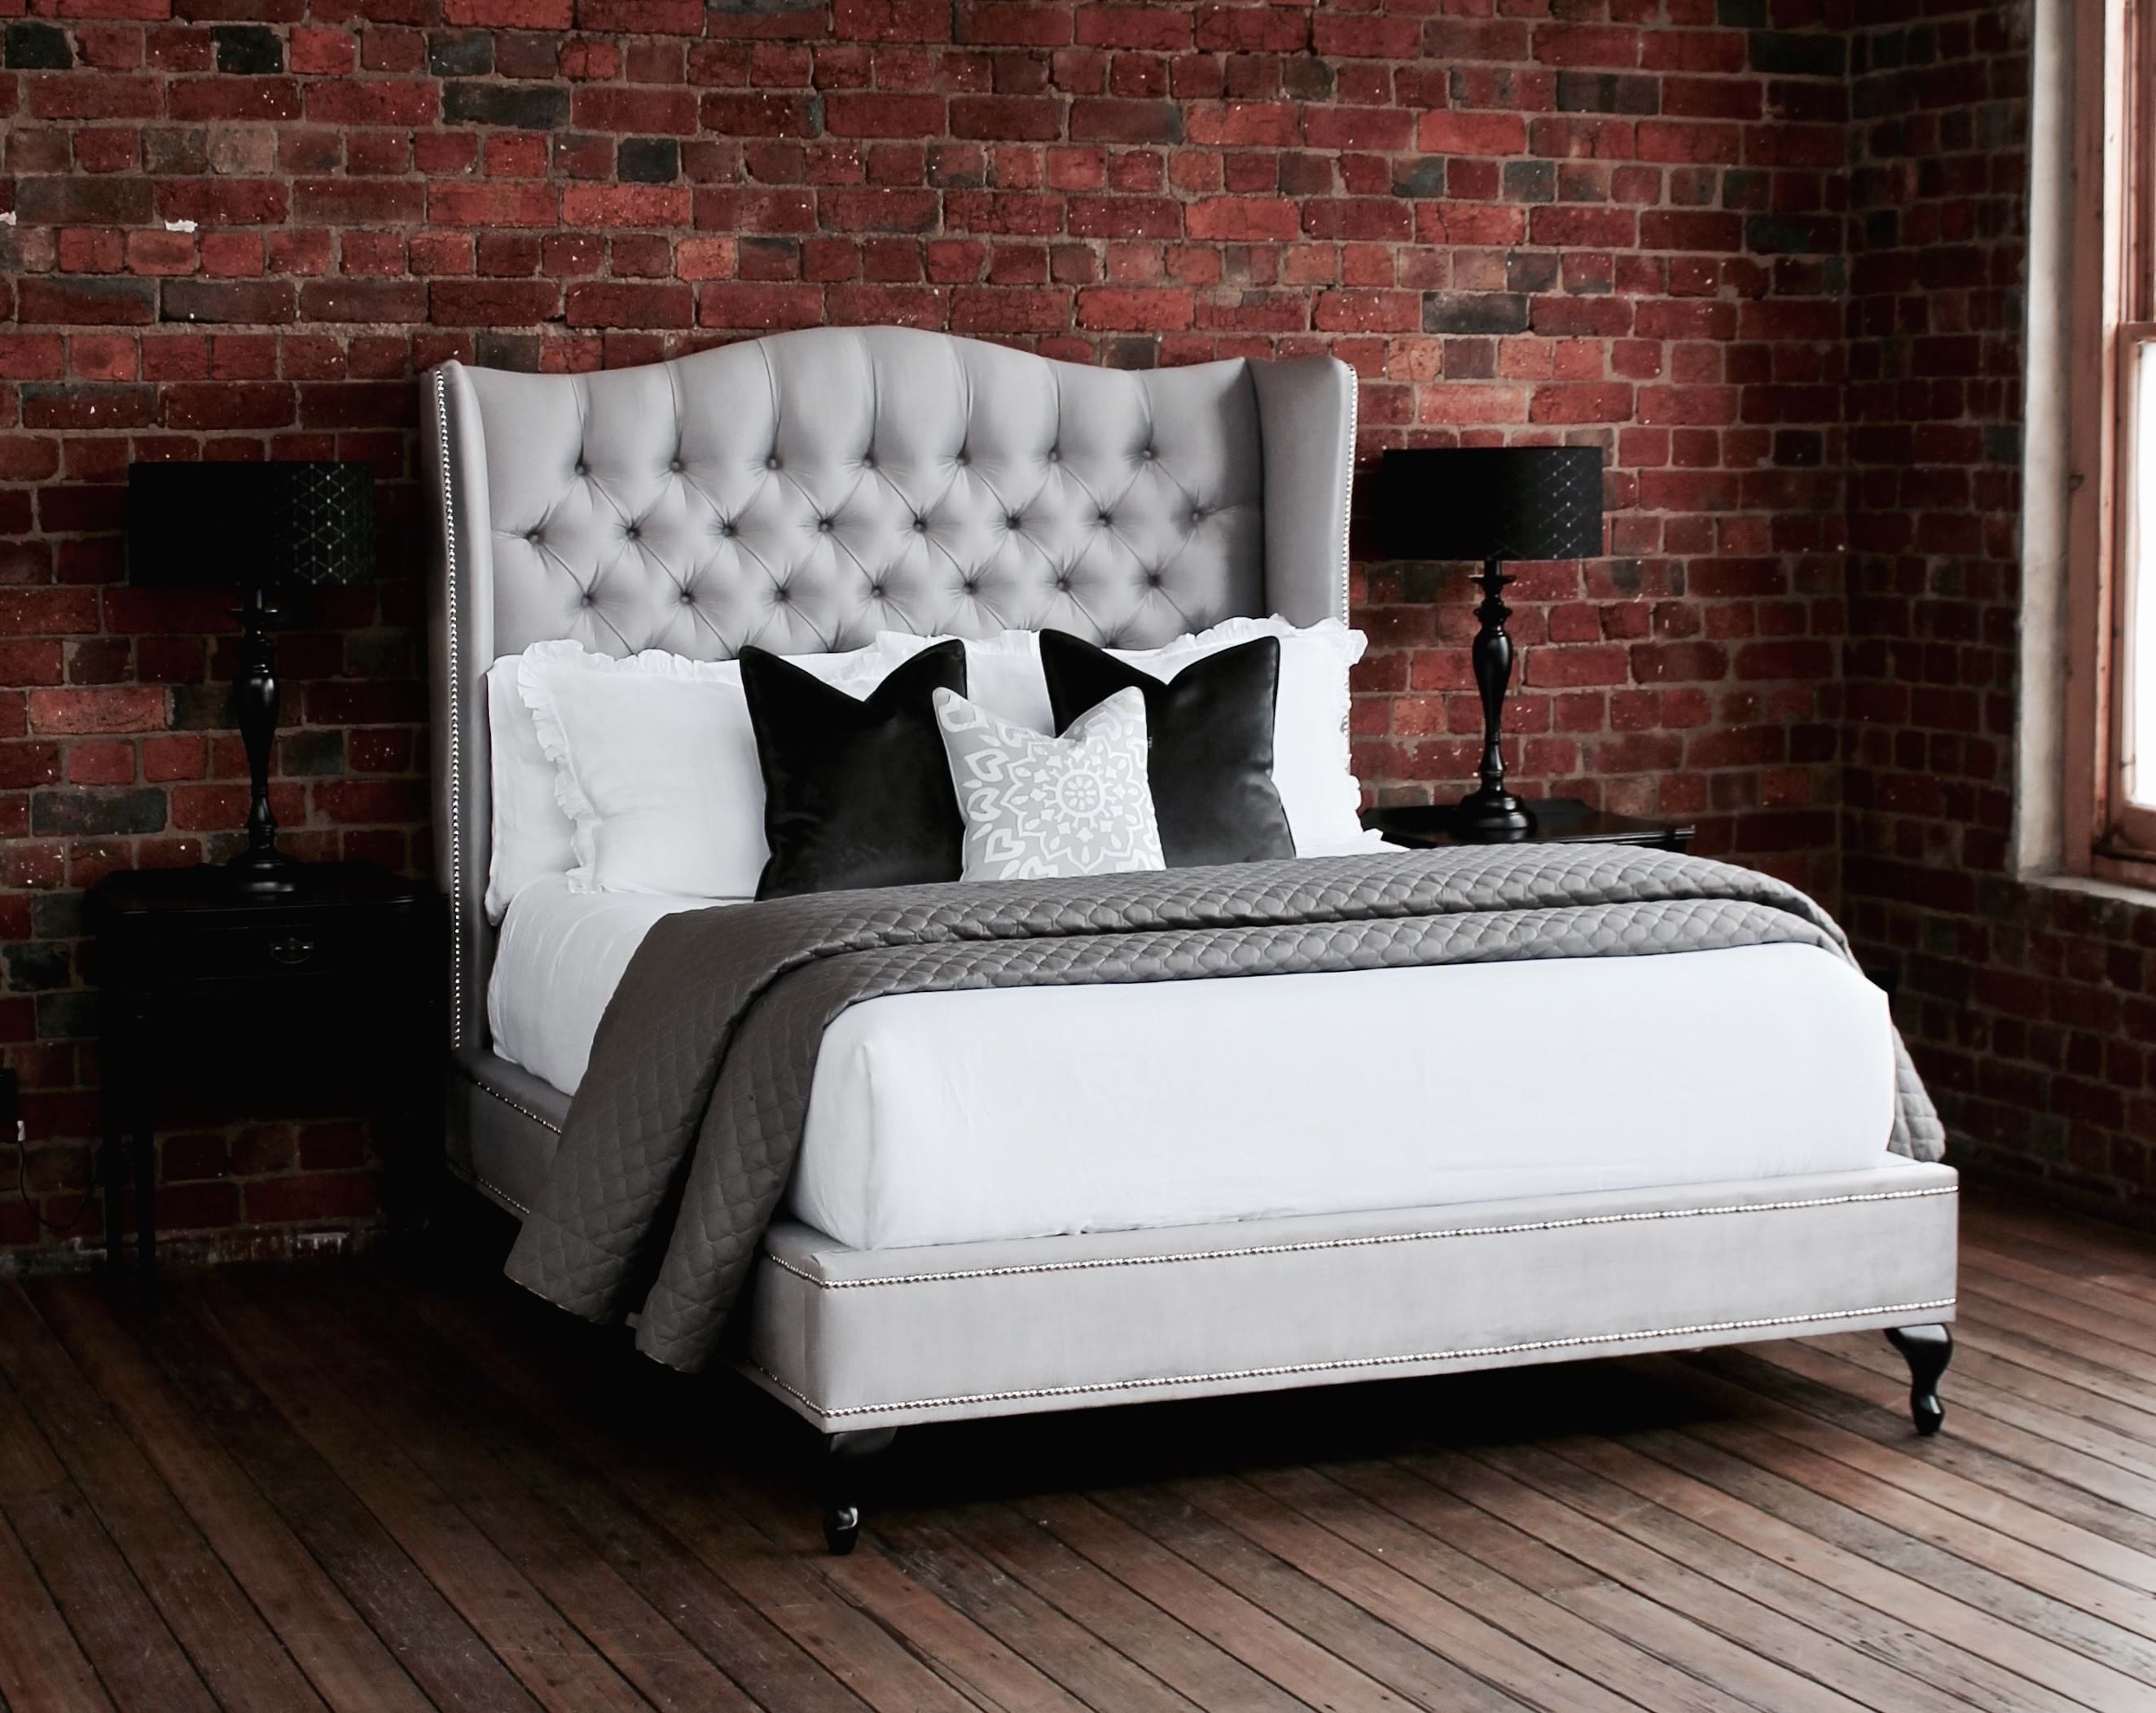 Wing Bed Head Wing Bedhead Upholstered Beds Upholstered